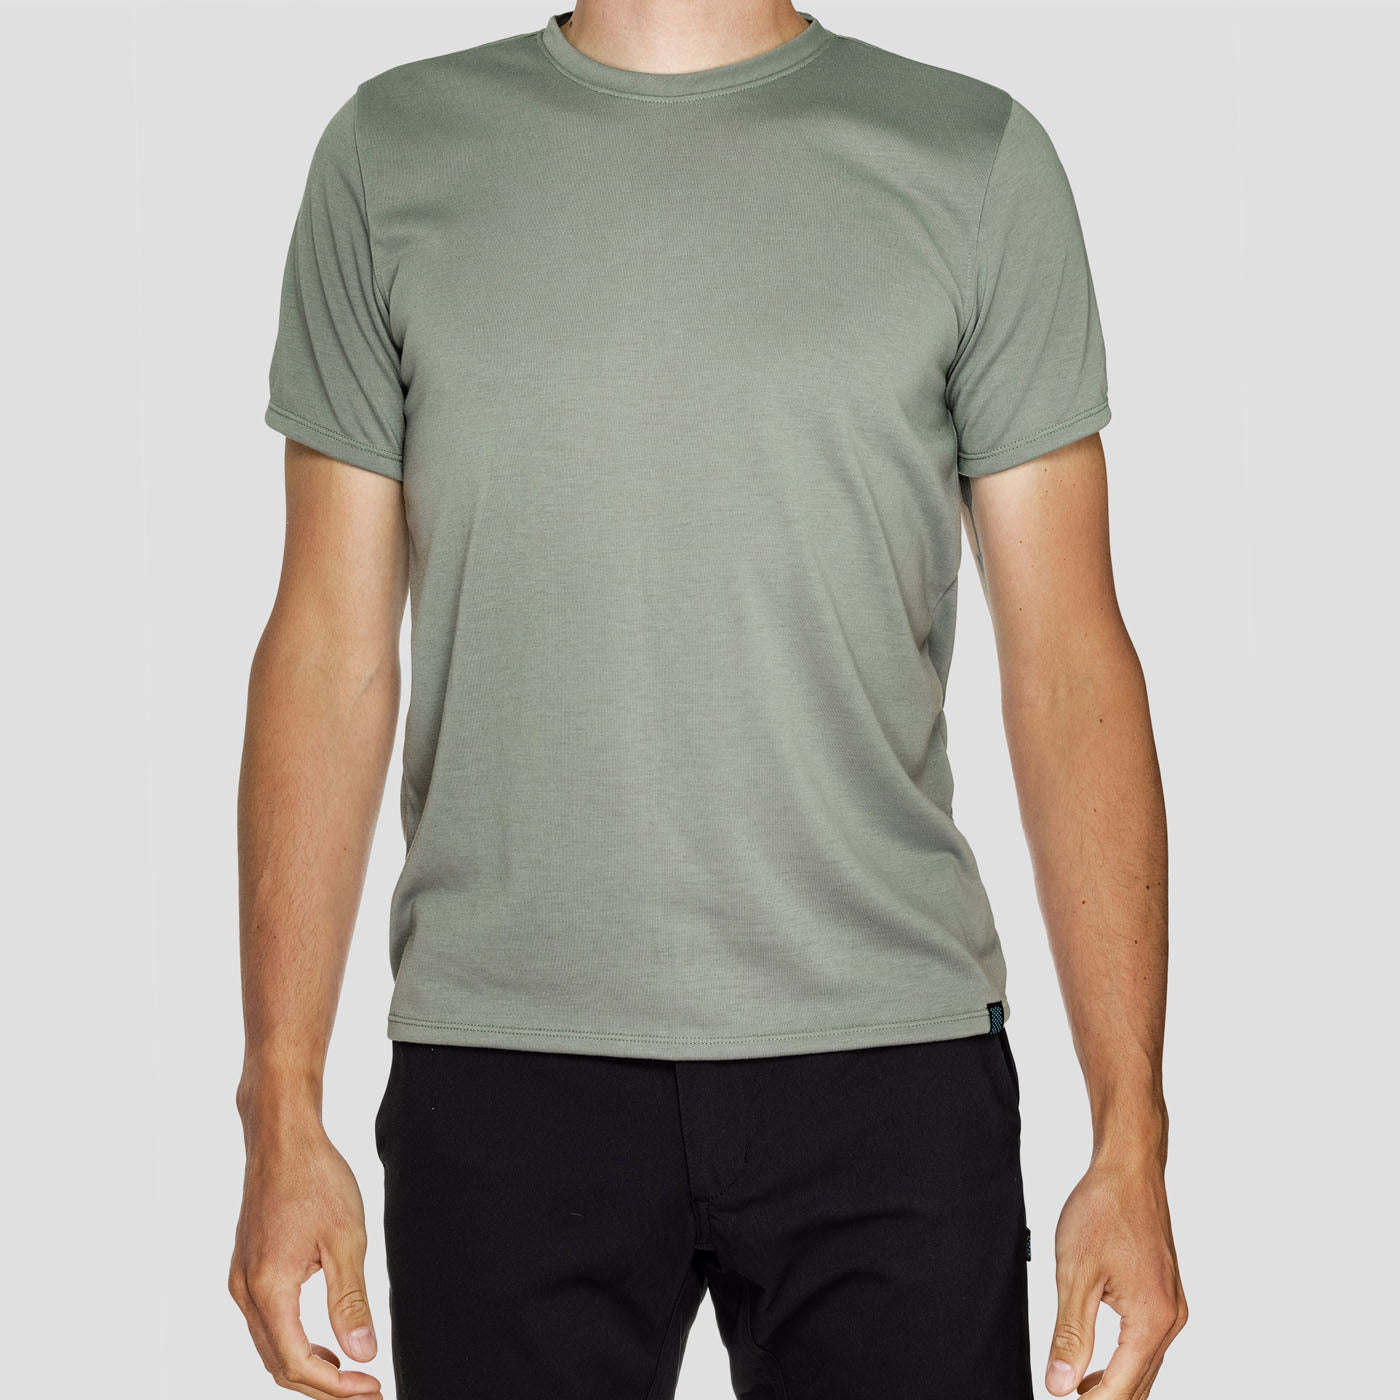 Recycled Tech Shirt - Sage